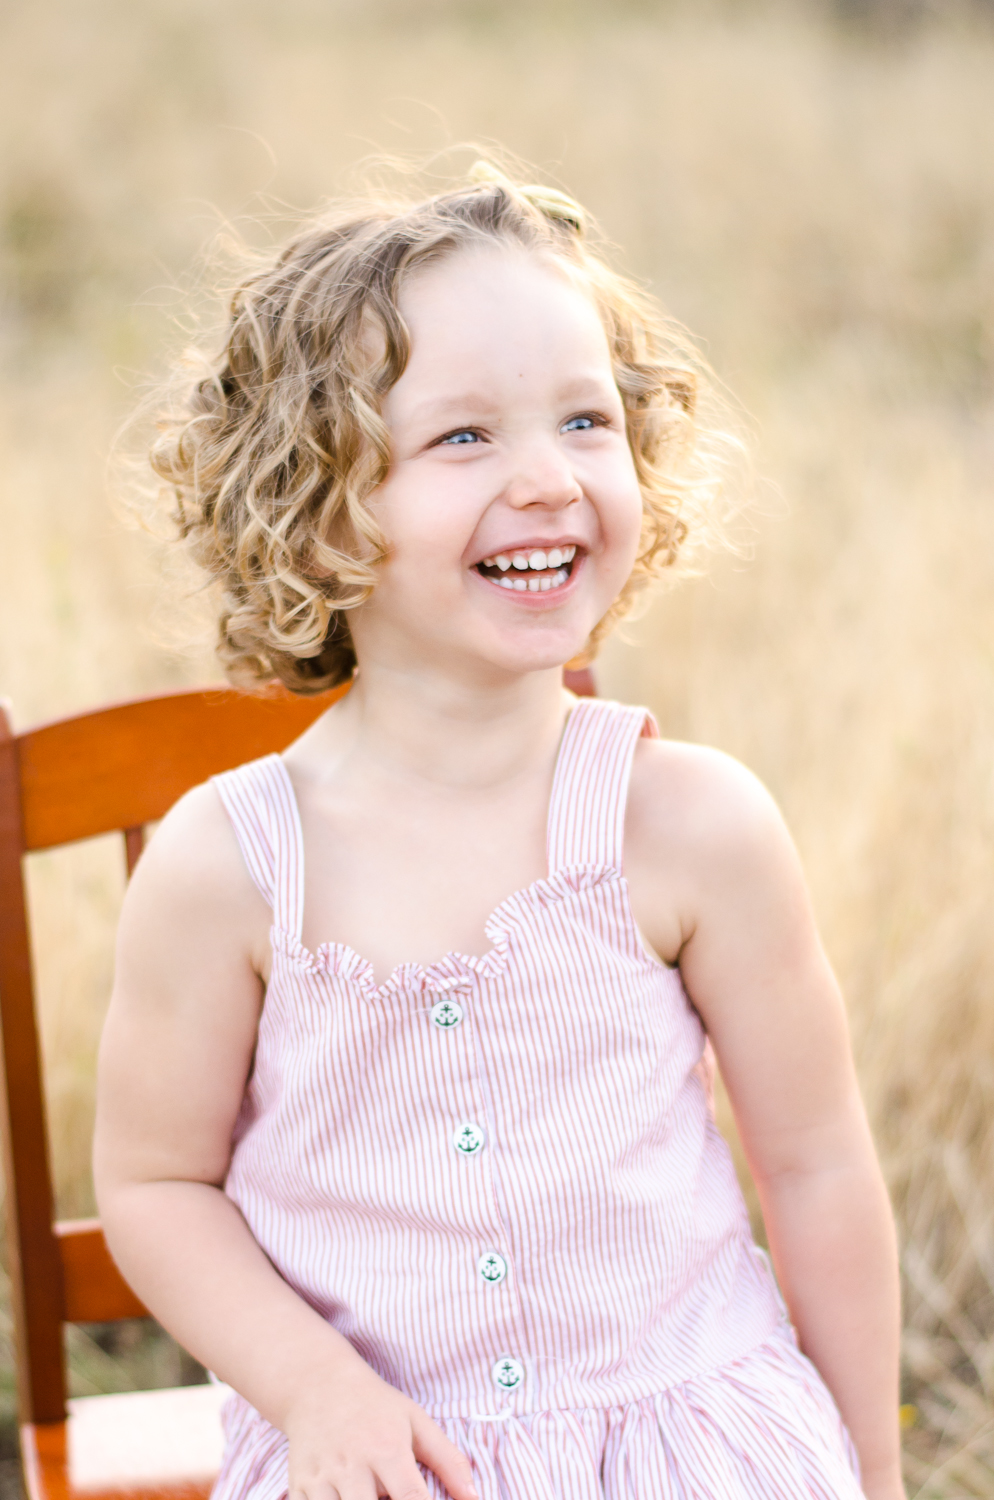 glendale arizona family photographer -04932015.jpg